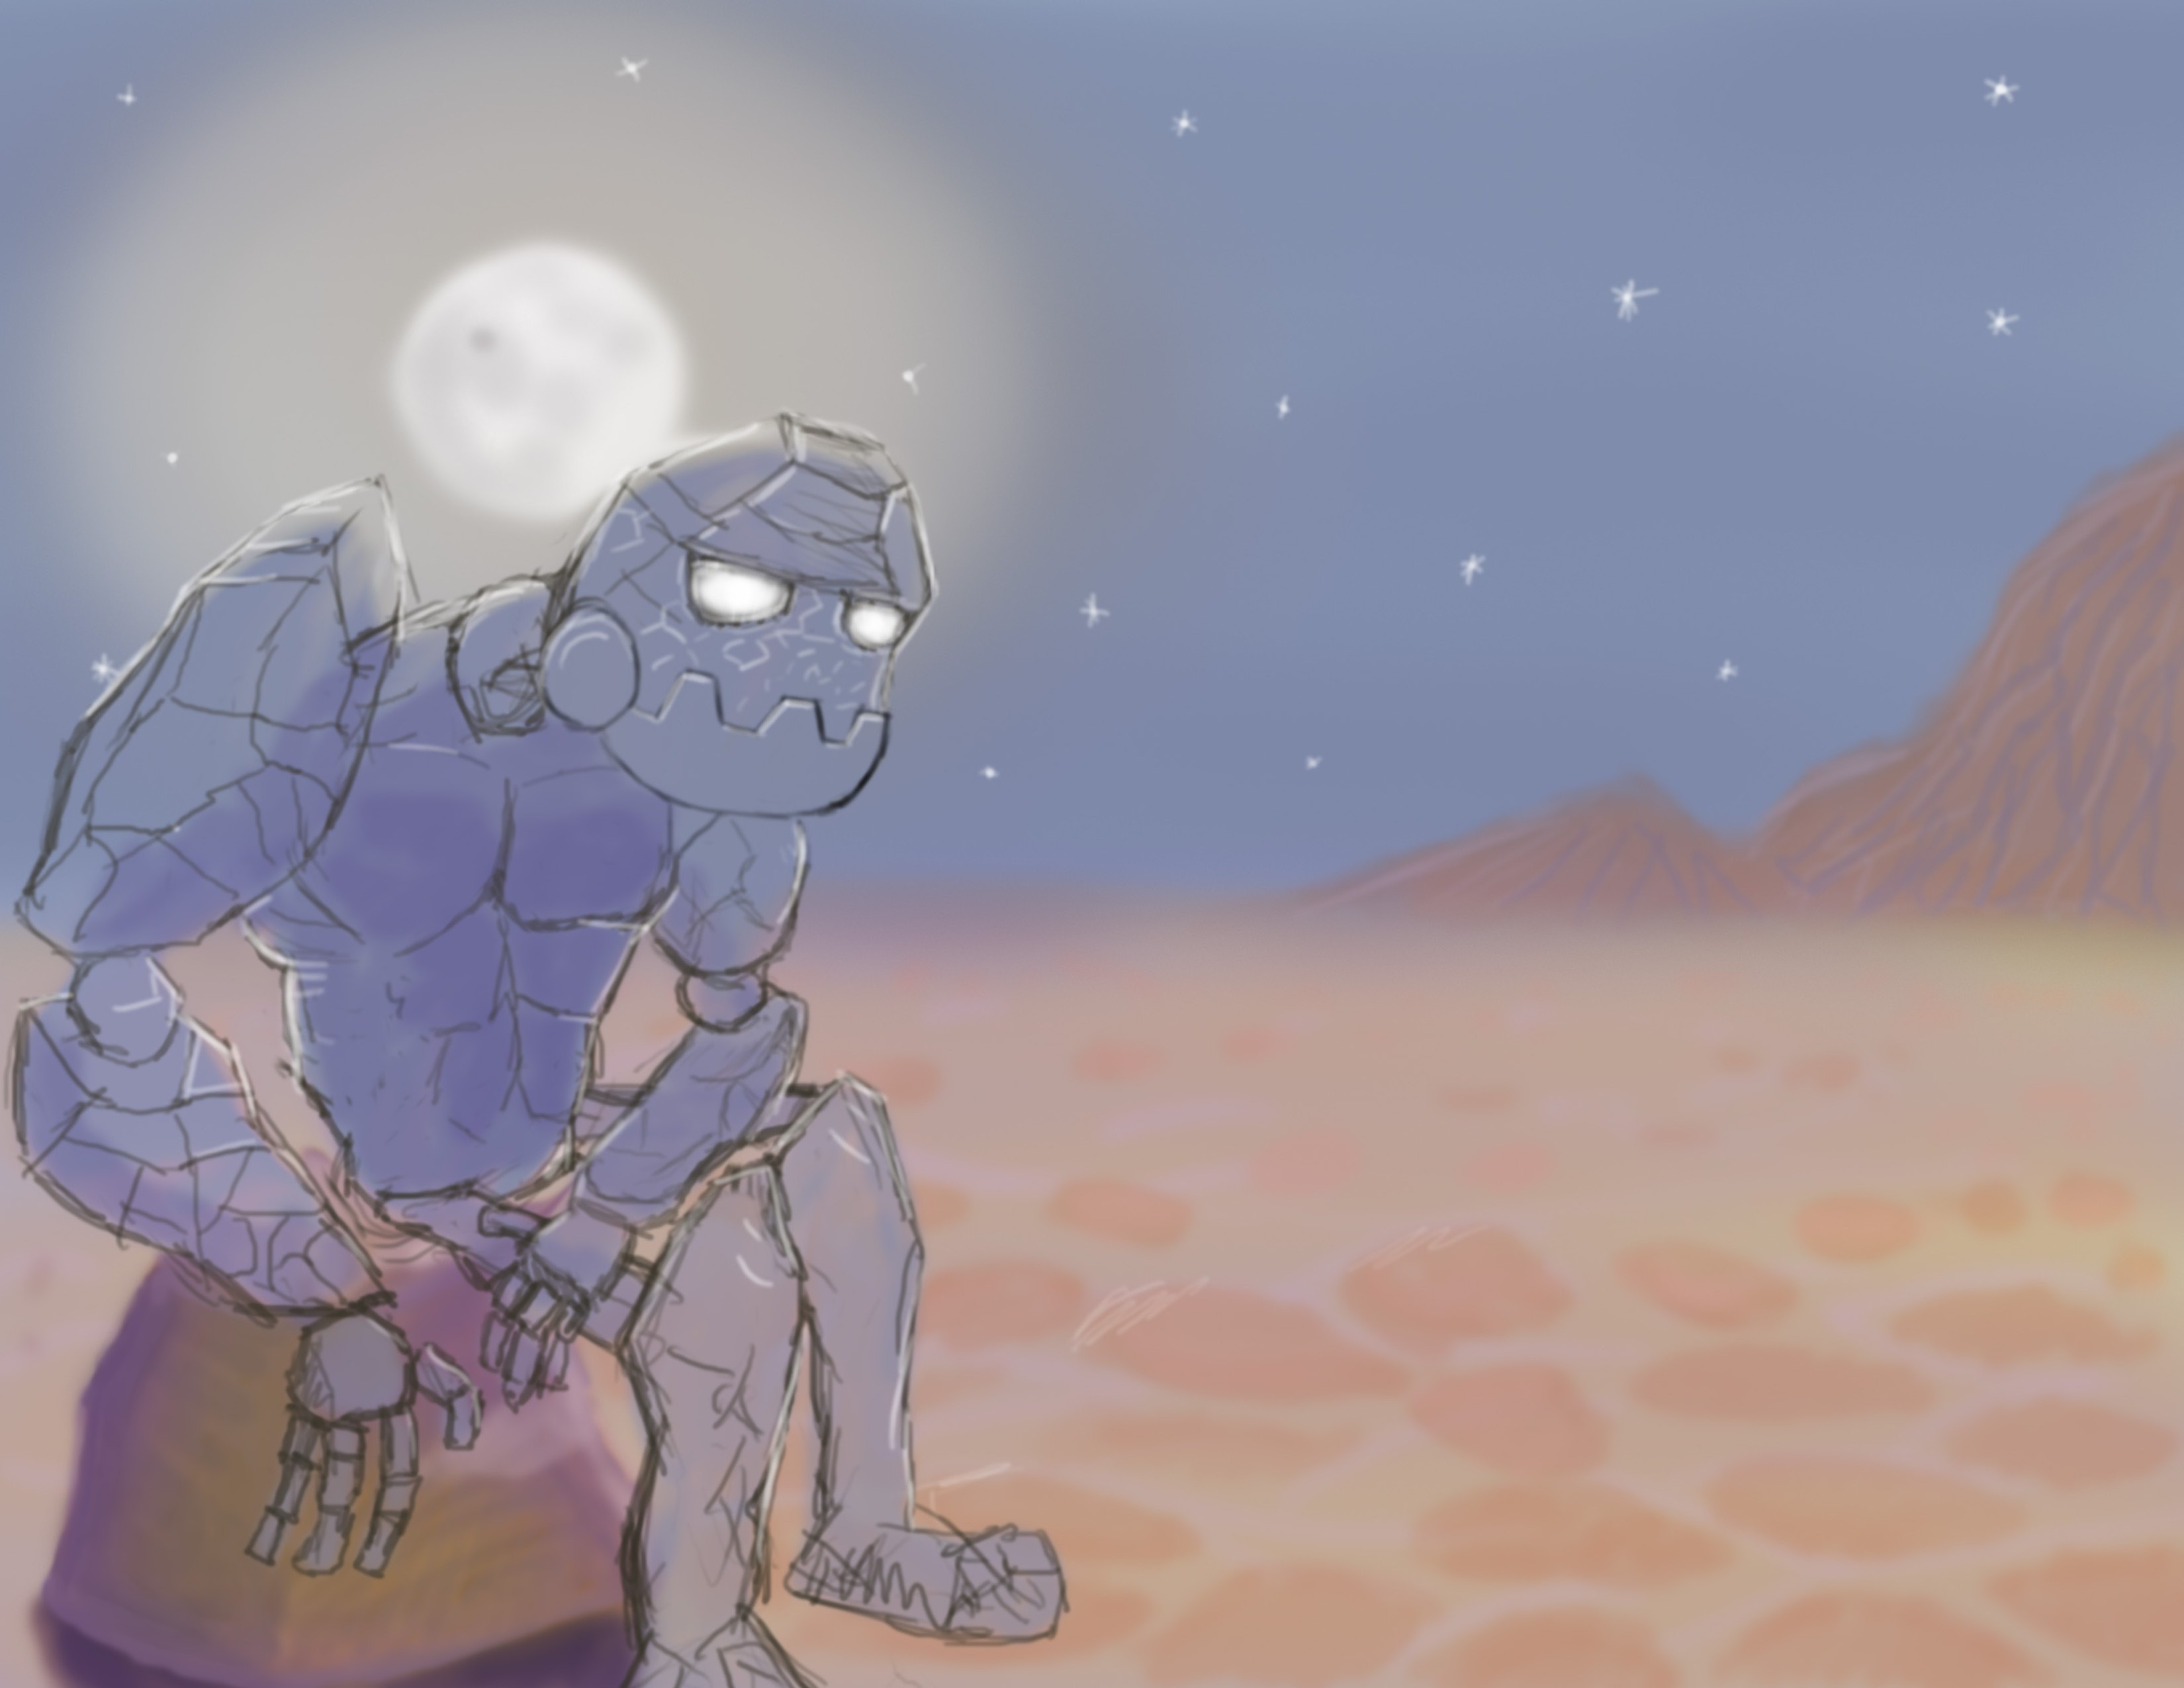 Magic golem by the dessert